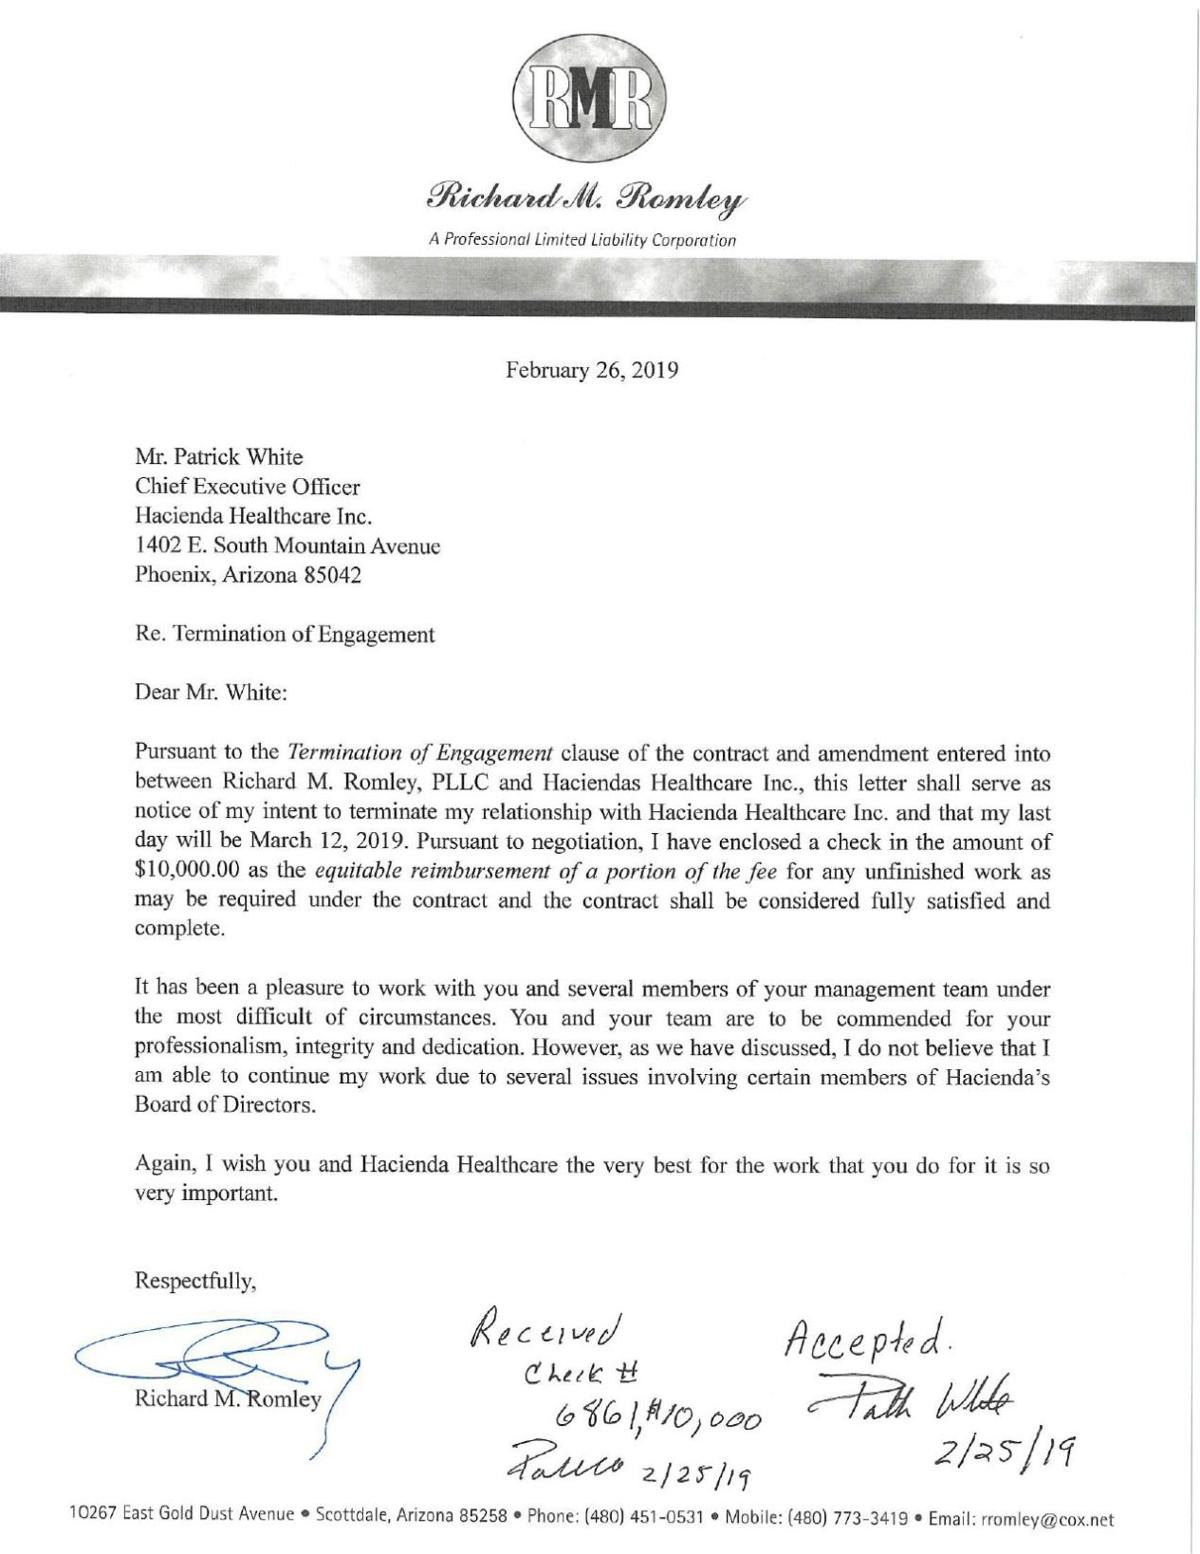 Resignation letter from Richard Romley | | azfamily.com